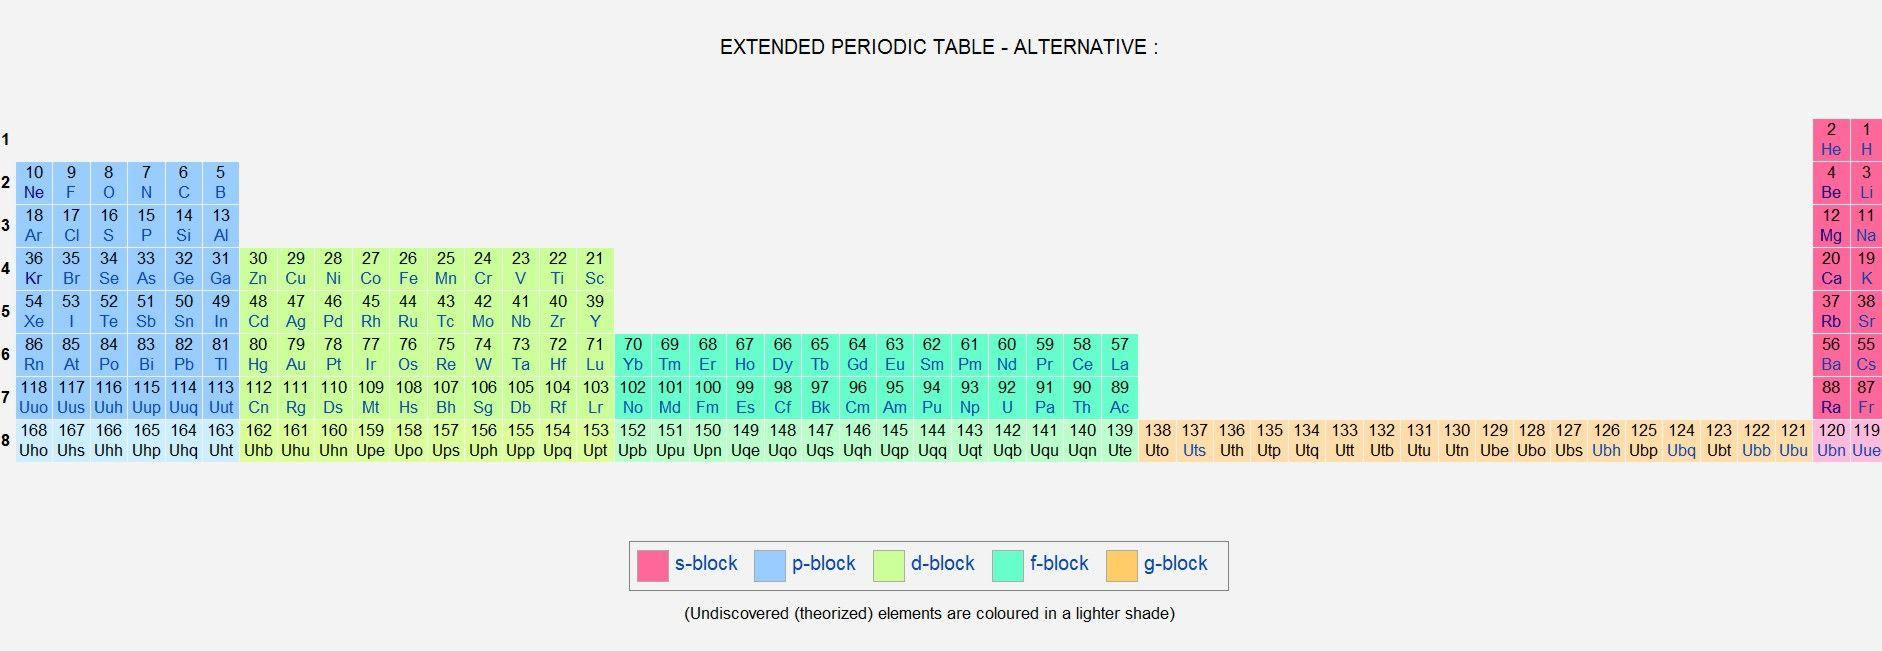 extended periodic table - alternativerasko jovanovic (2012